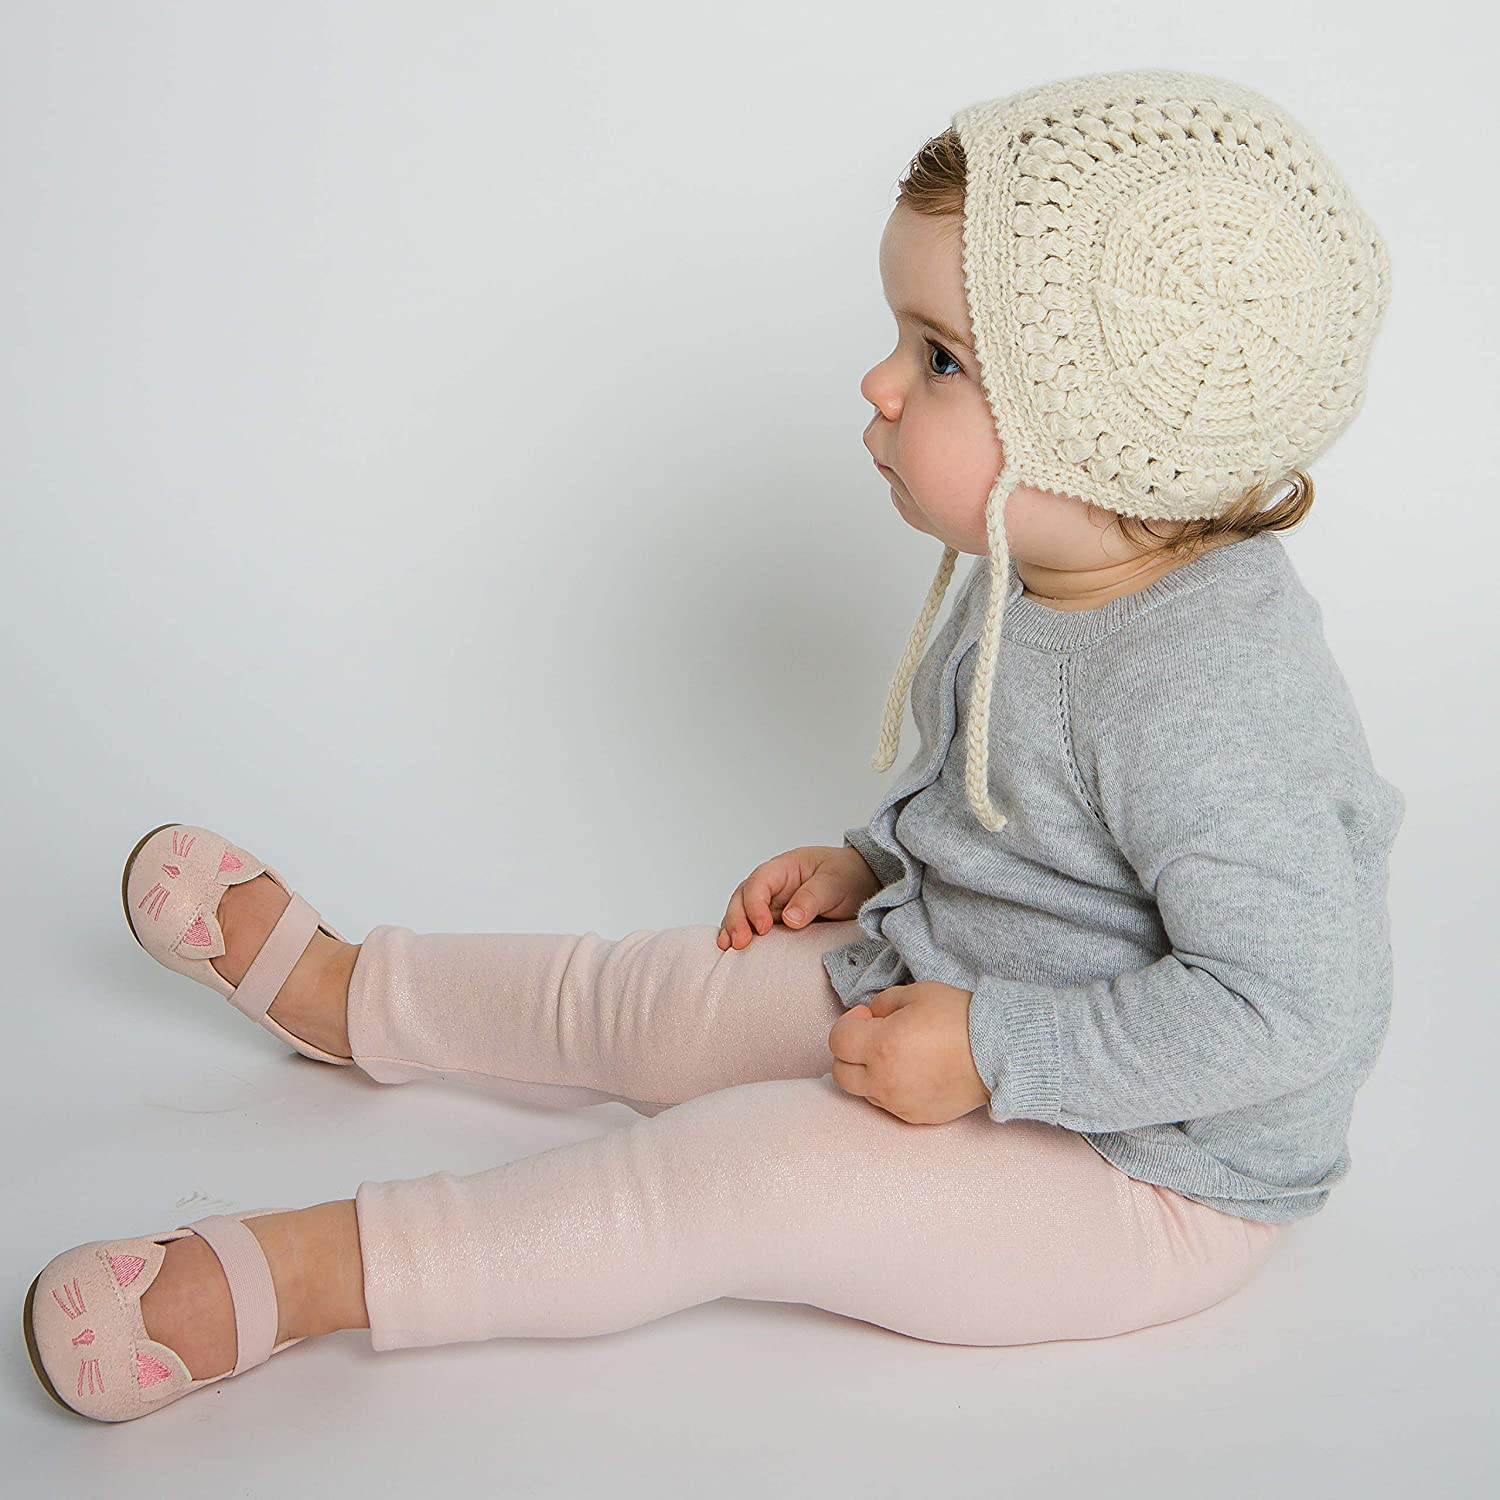 Hand-Knit 100% Organic Alpaca Wool | Loreto Bonnet Hat (Cream) by Surhilo | Soft, Quality, Hypoallergenic | The Perfect and Eco-Friendly Way to Keep Your Baby and Toddler Cozy and Comfortable